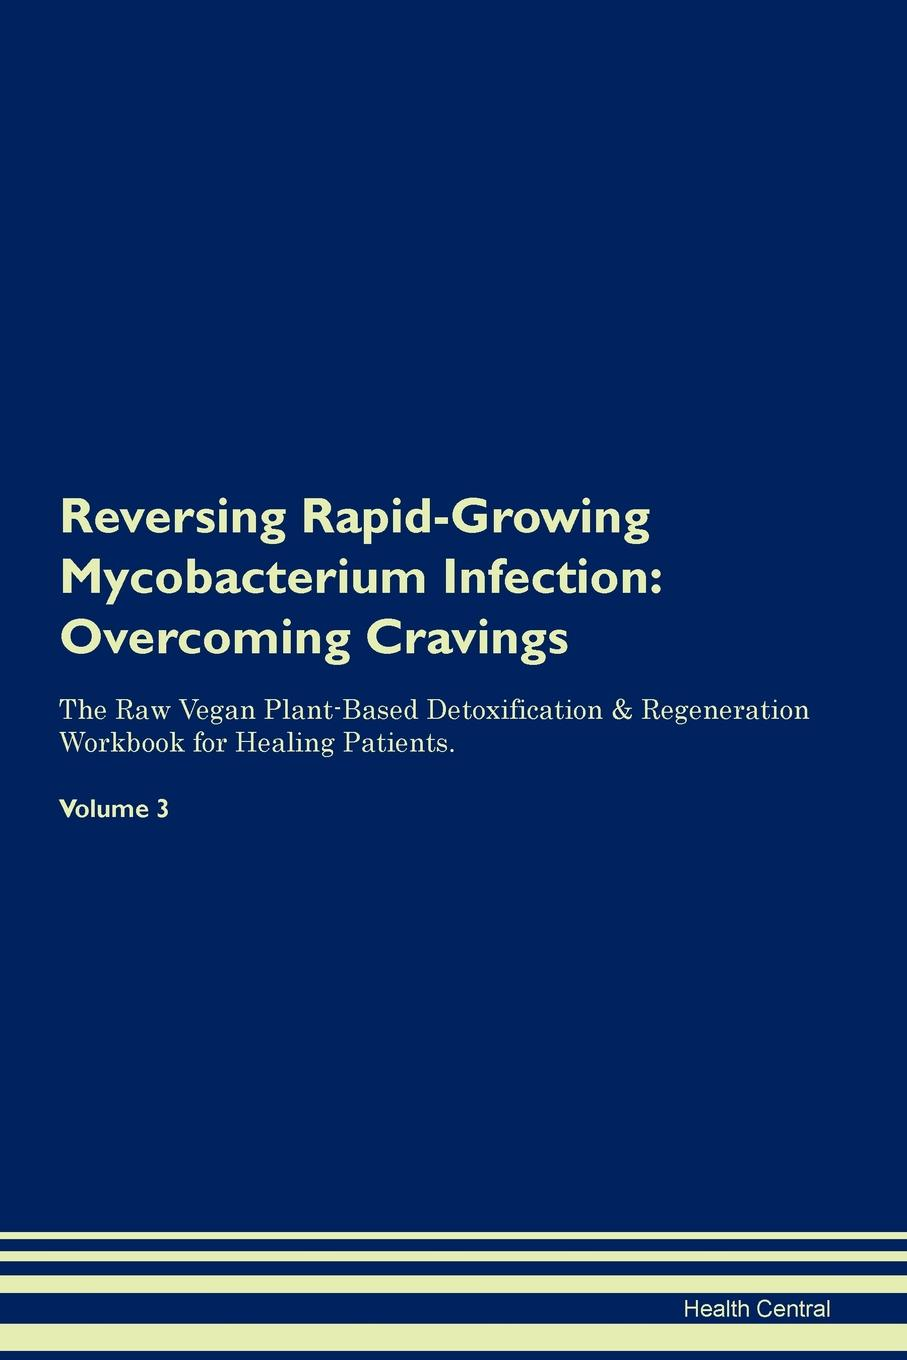 Health Central Reversing Rapid-Growing Mycobacterium Infection. Overcoming Cravings The Raw Vegan Plant-Based Detoxification . Regeneration Workbook for Healing Patients. Volume 3 mycobacterium abscessus